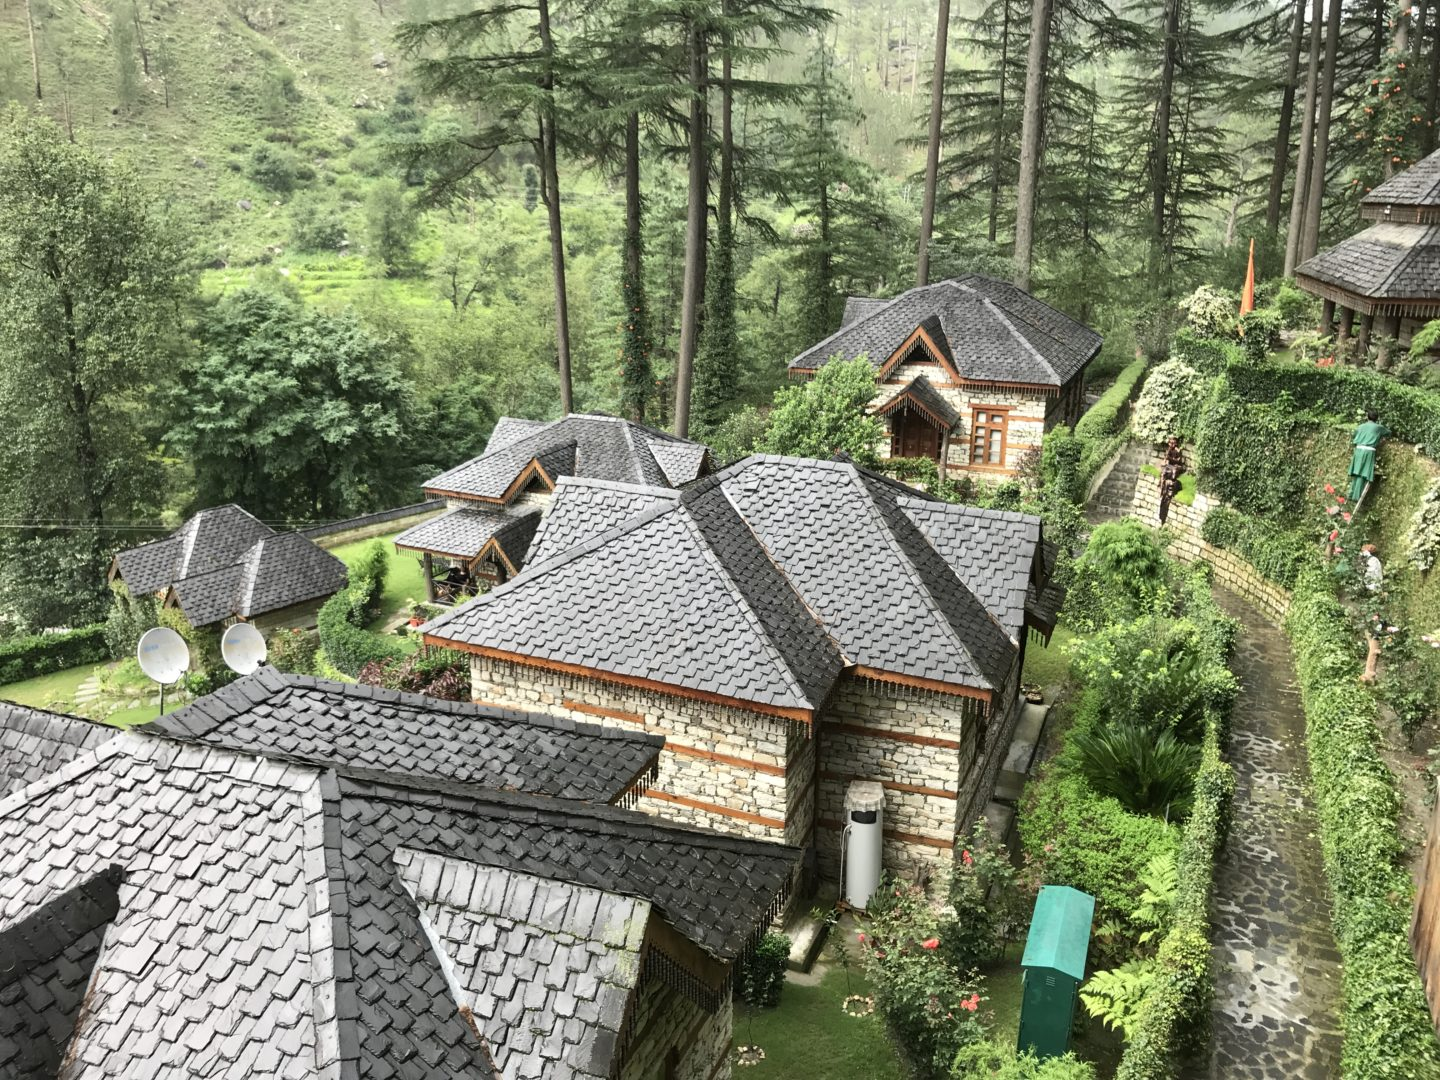 The himalayan village view